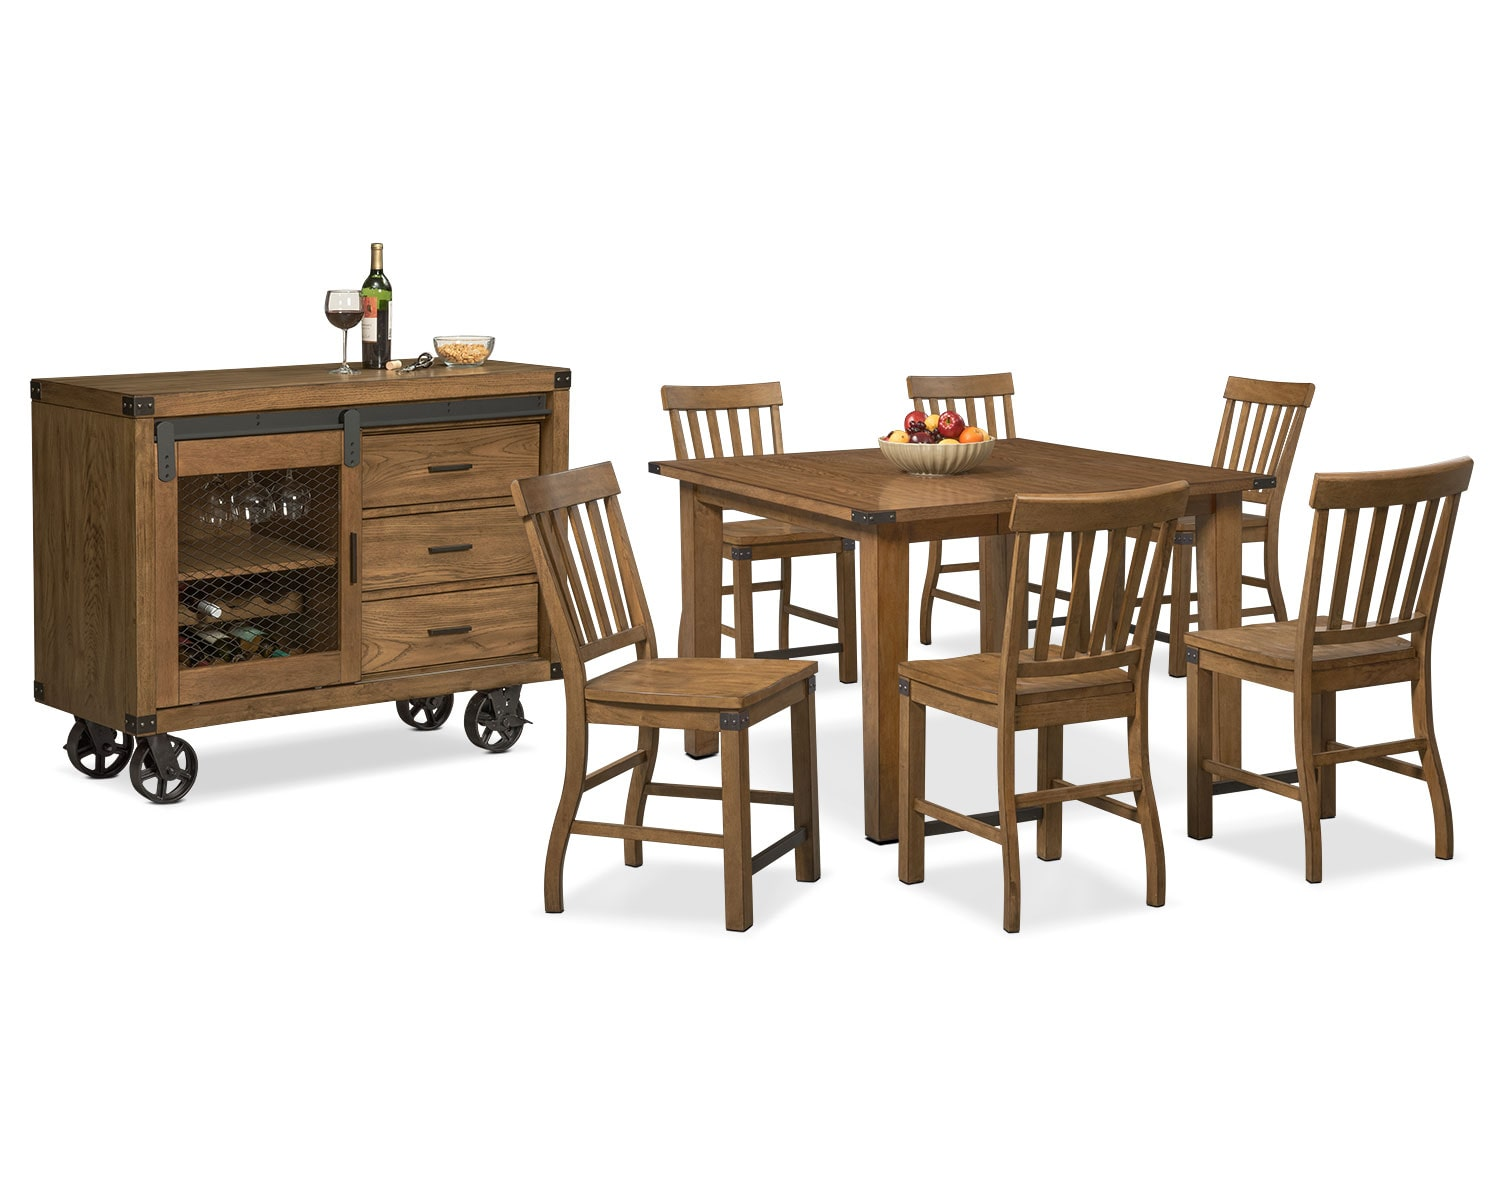 The Salem Counter-Height Dining Collection - Pecan